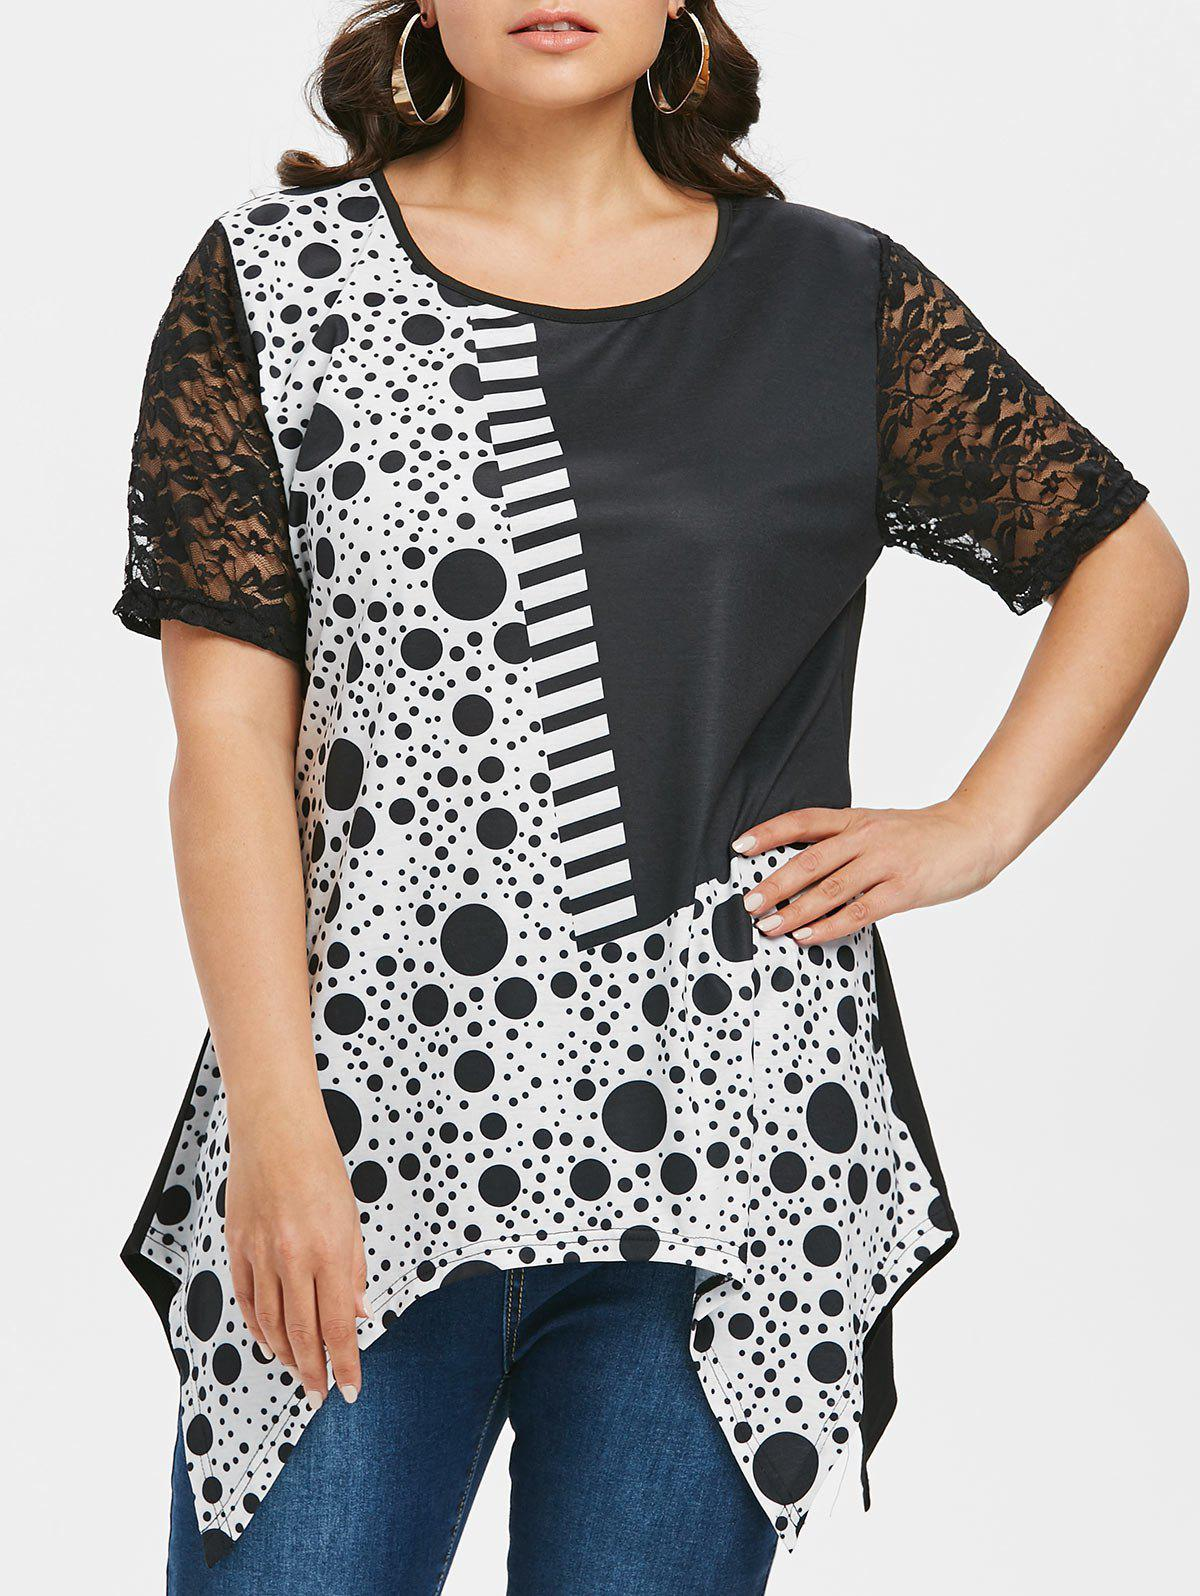 60c15ab0126a96 57% OFF   2019 Polka Dot Lace Insert Plus Size T-shirt